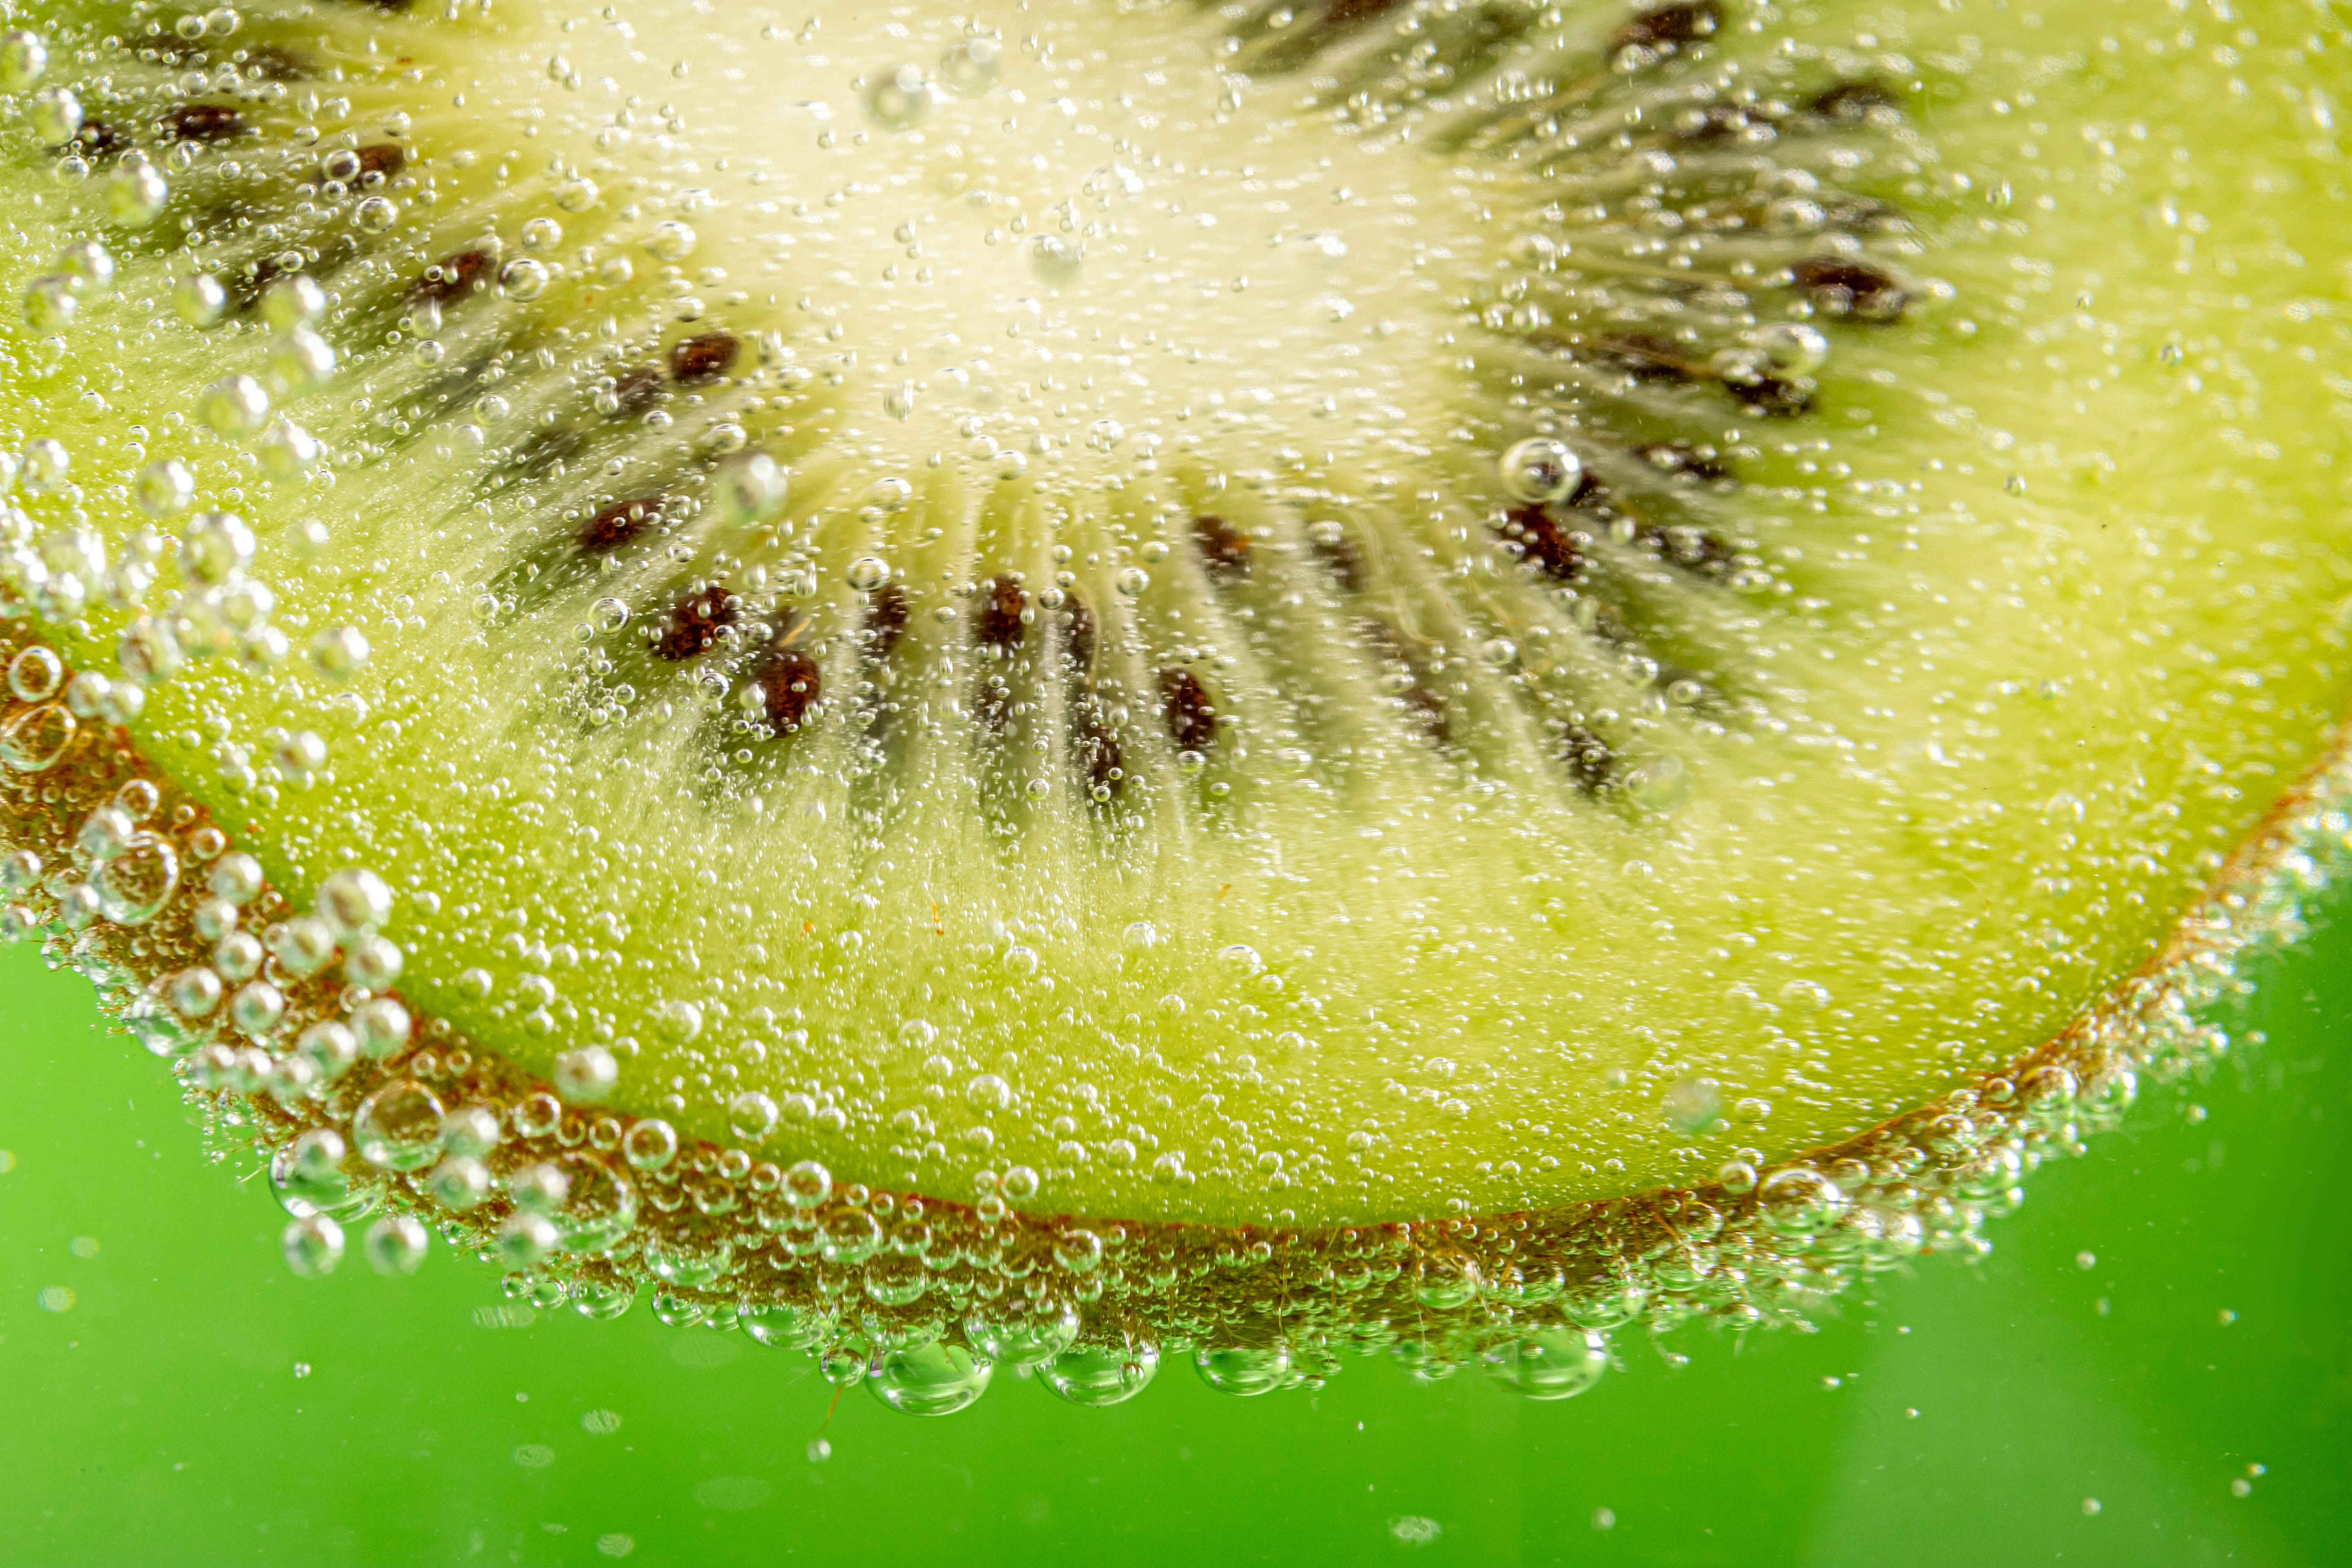 131723 download wallpaper Macro, Kiwi, Lobule, Clove, Bubbles screensavers and pictures for free